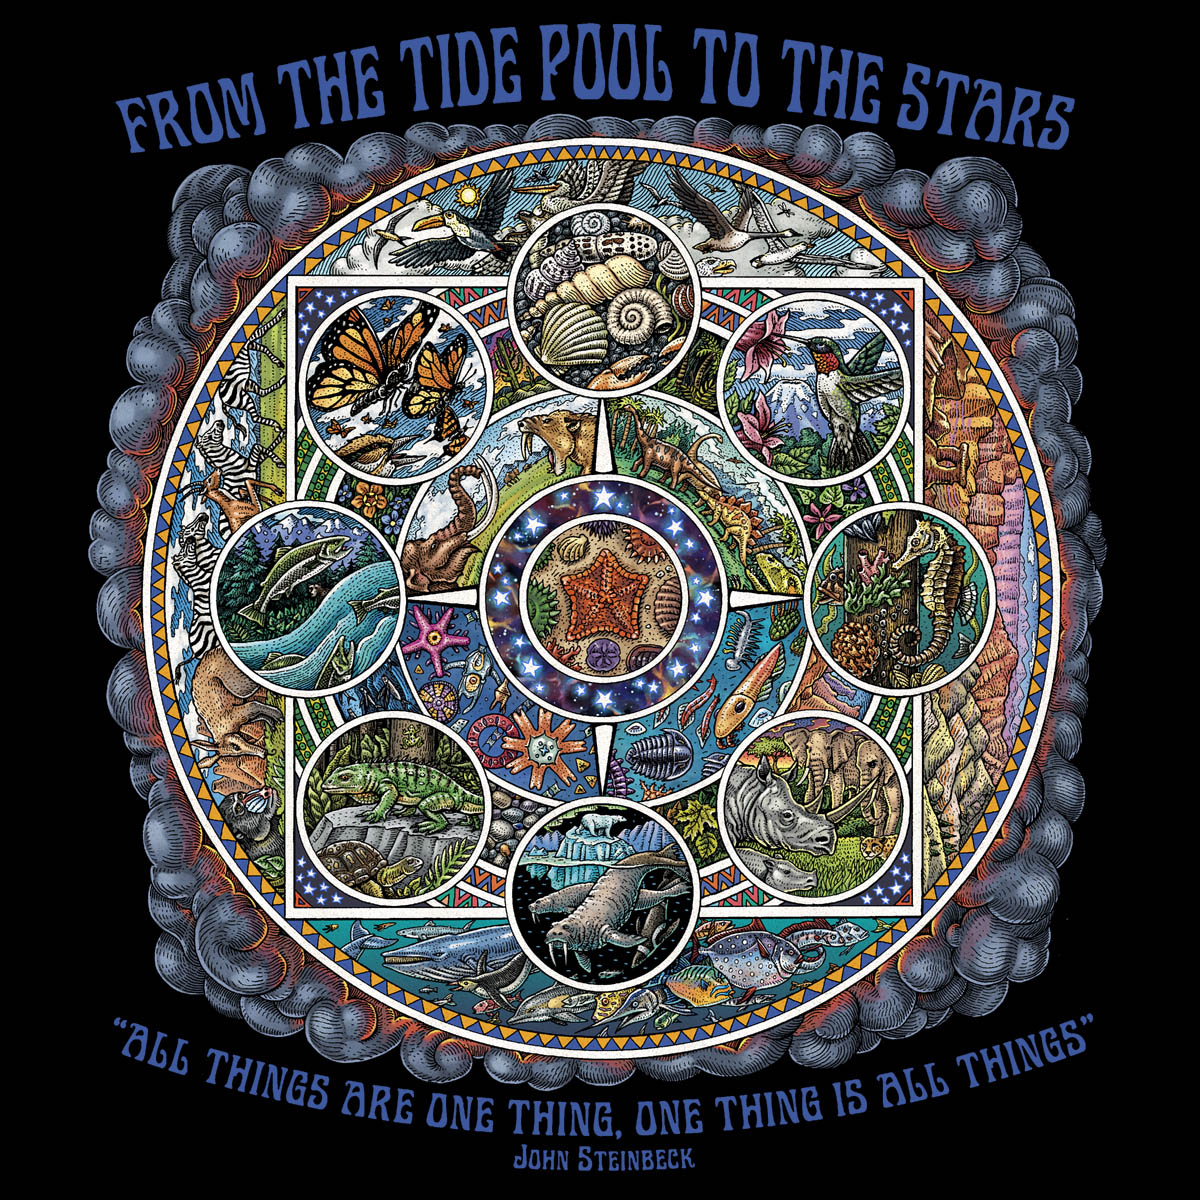 589 - Tide Pool Mandala